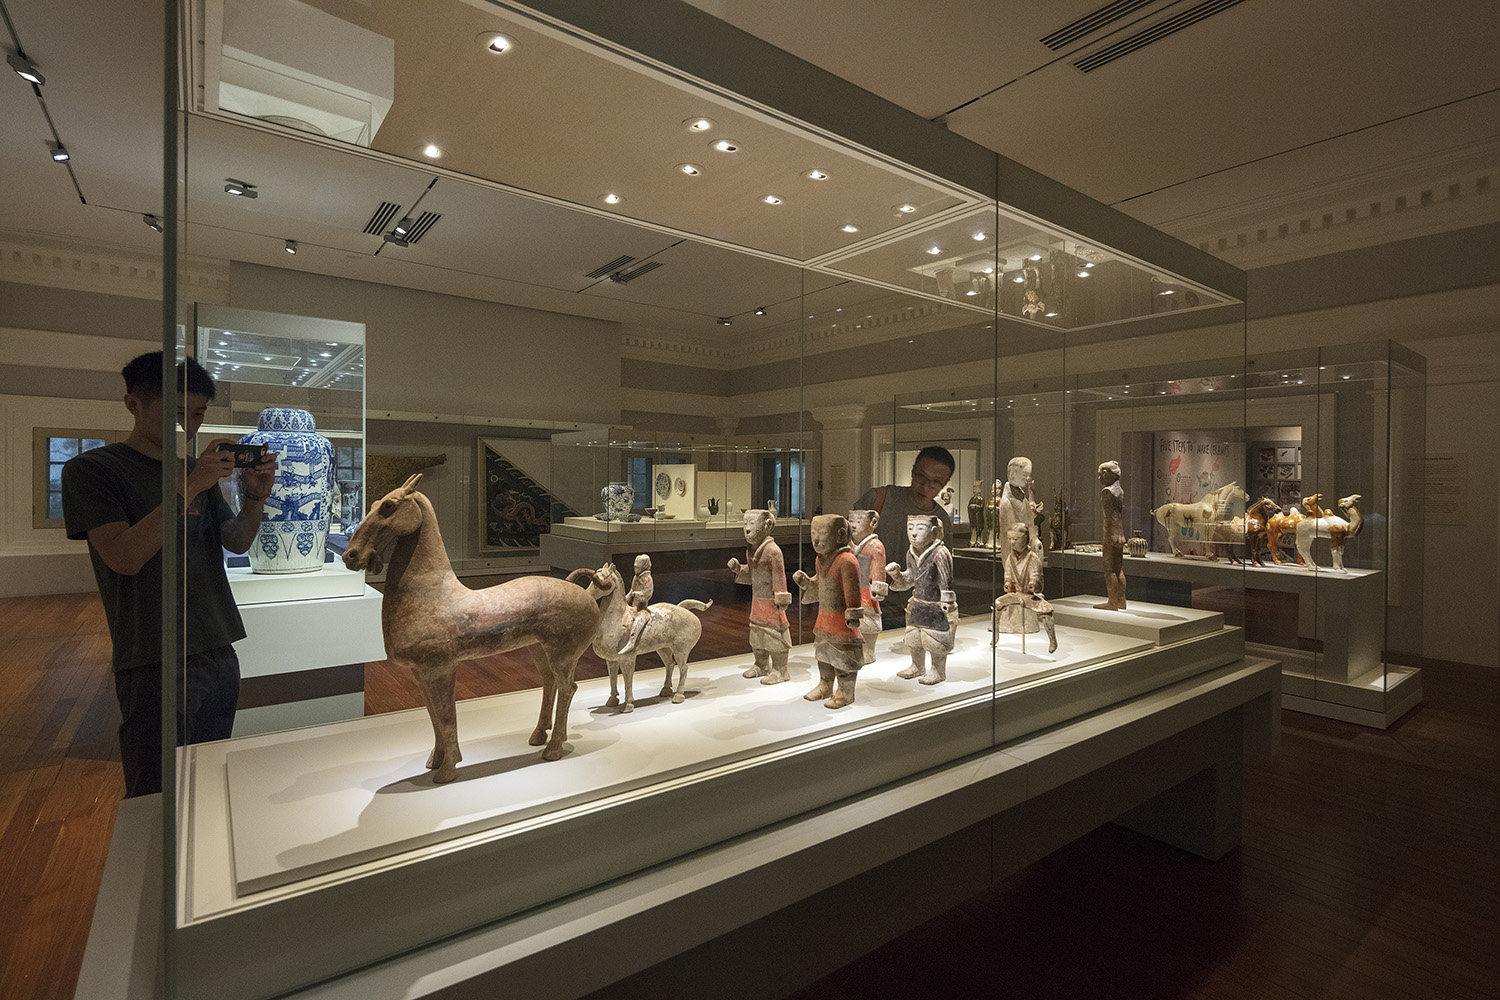 Artefacts are showcased in custom cases and tailored mounts, with spatial planning and directed lighting ensuring they capture the attention of the visitor.